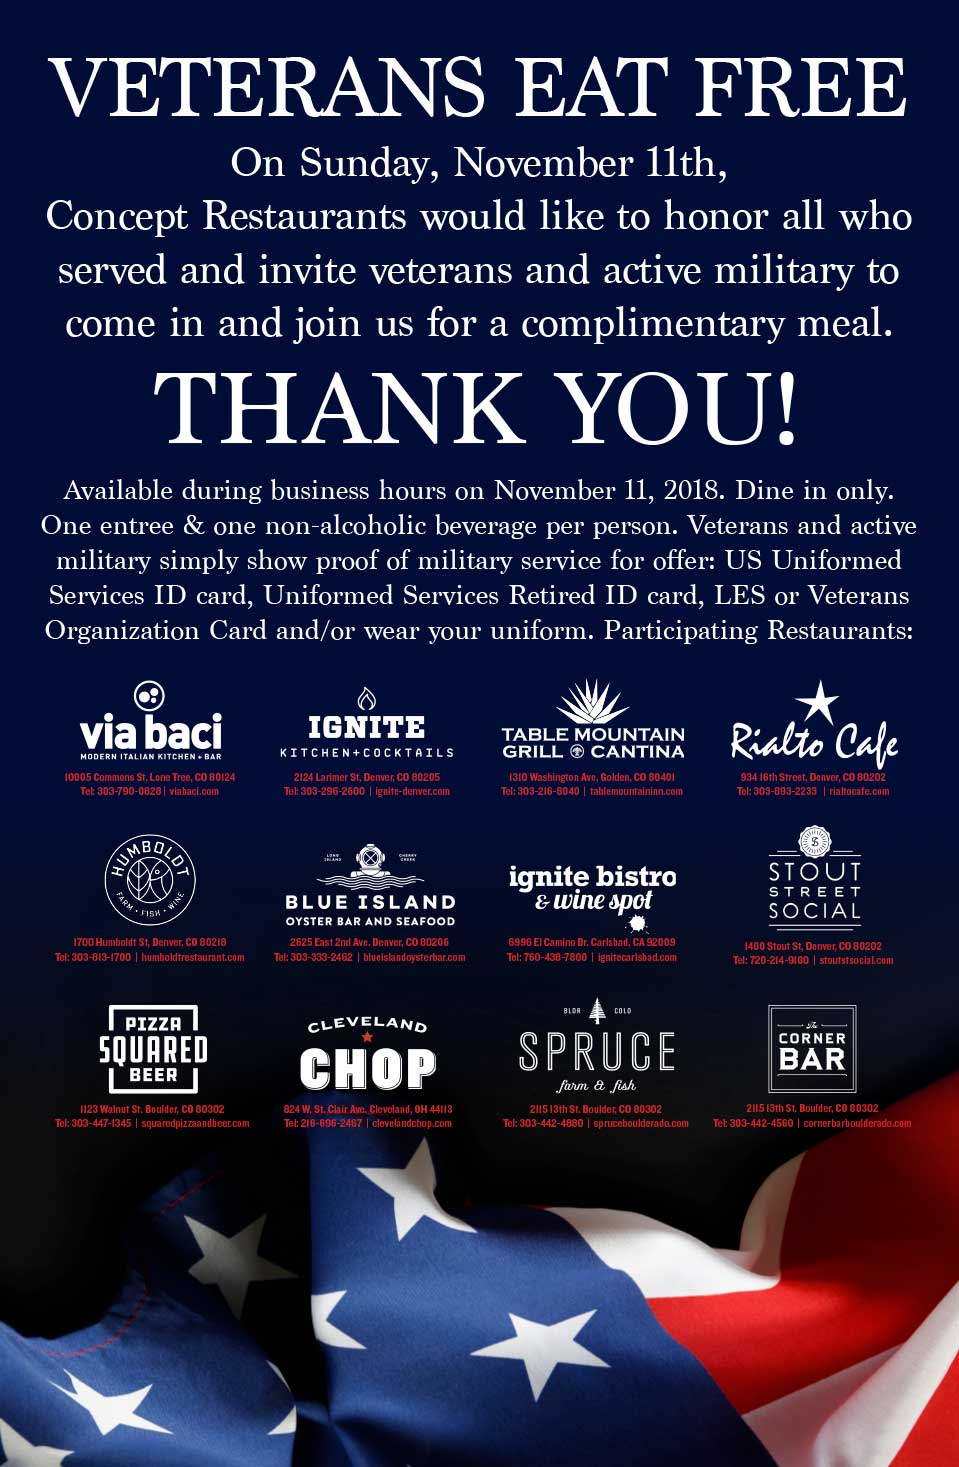 THANK YOU VETERANS! - Please visit each participating location's website for reservations.